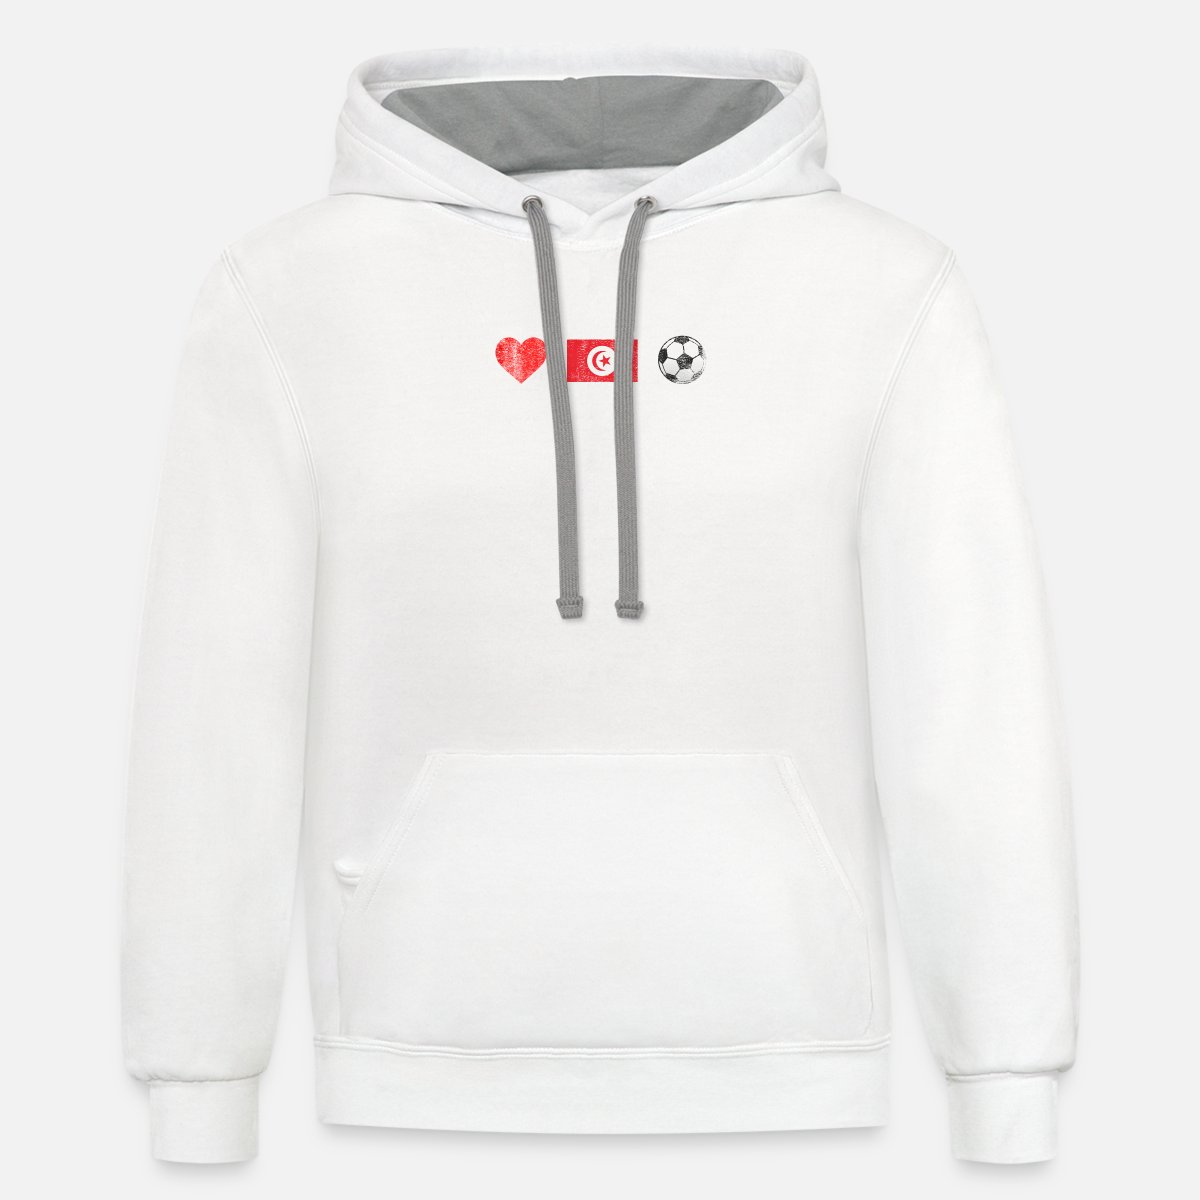 detailed look 4a3a3 d6817 Tunisia Football Shirt - Tunisia Soccer Jersey Contrast Hoodie - white/gray